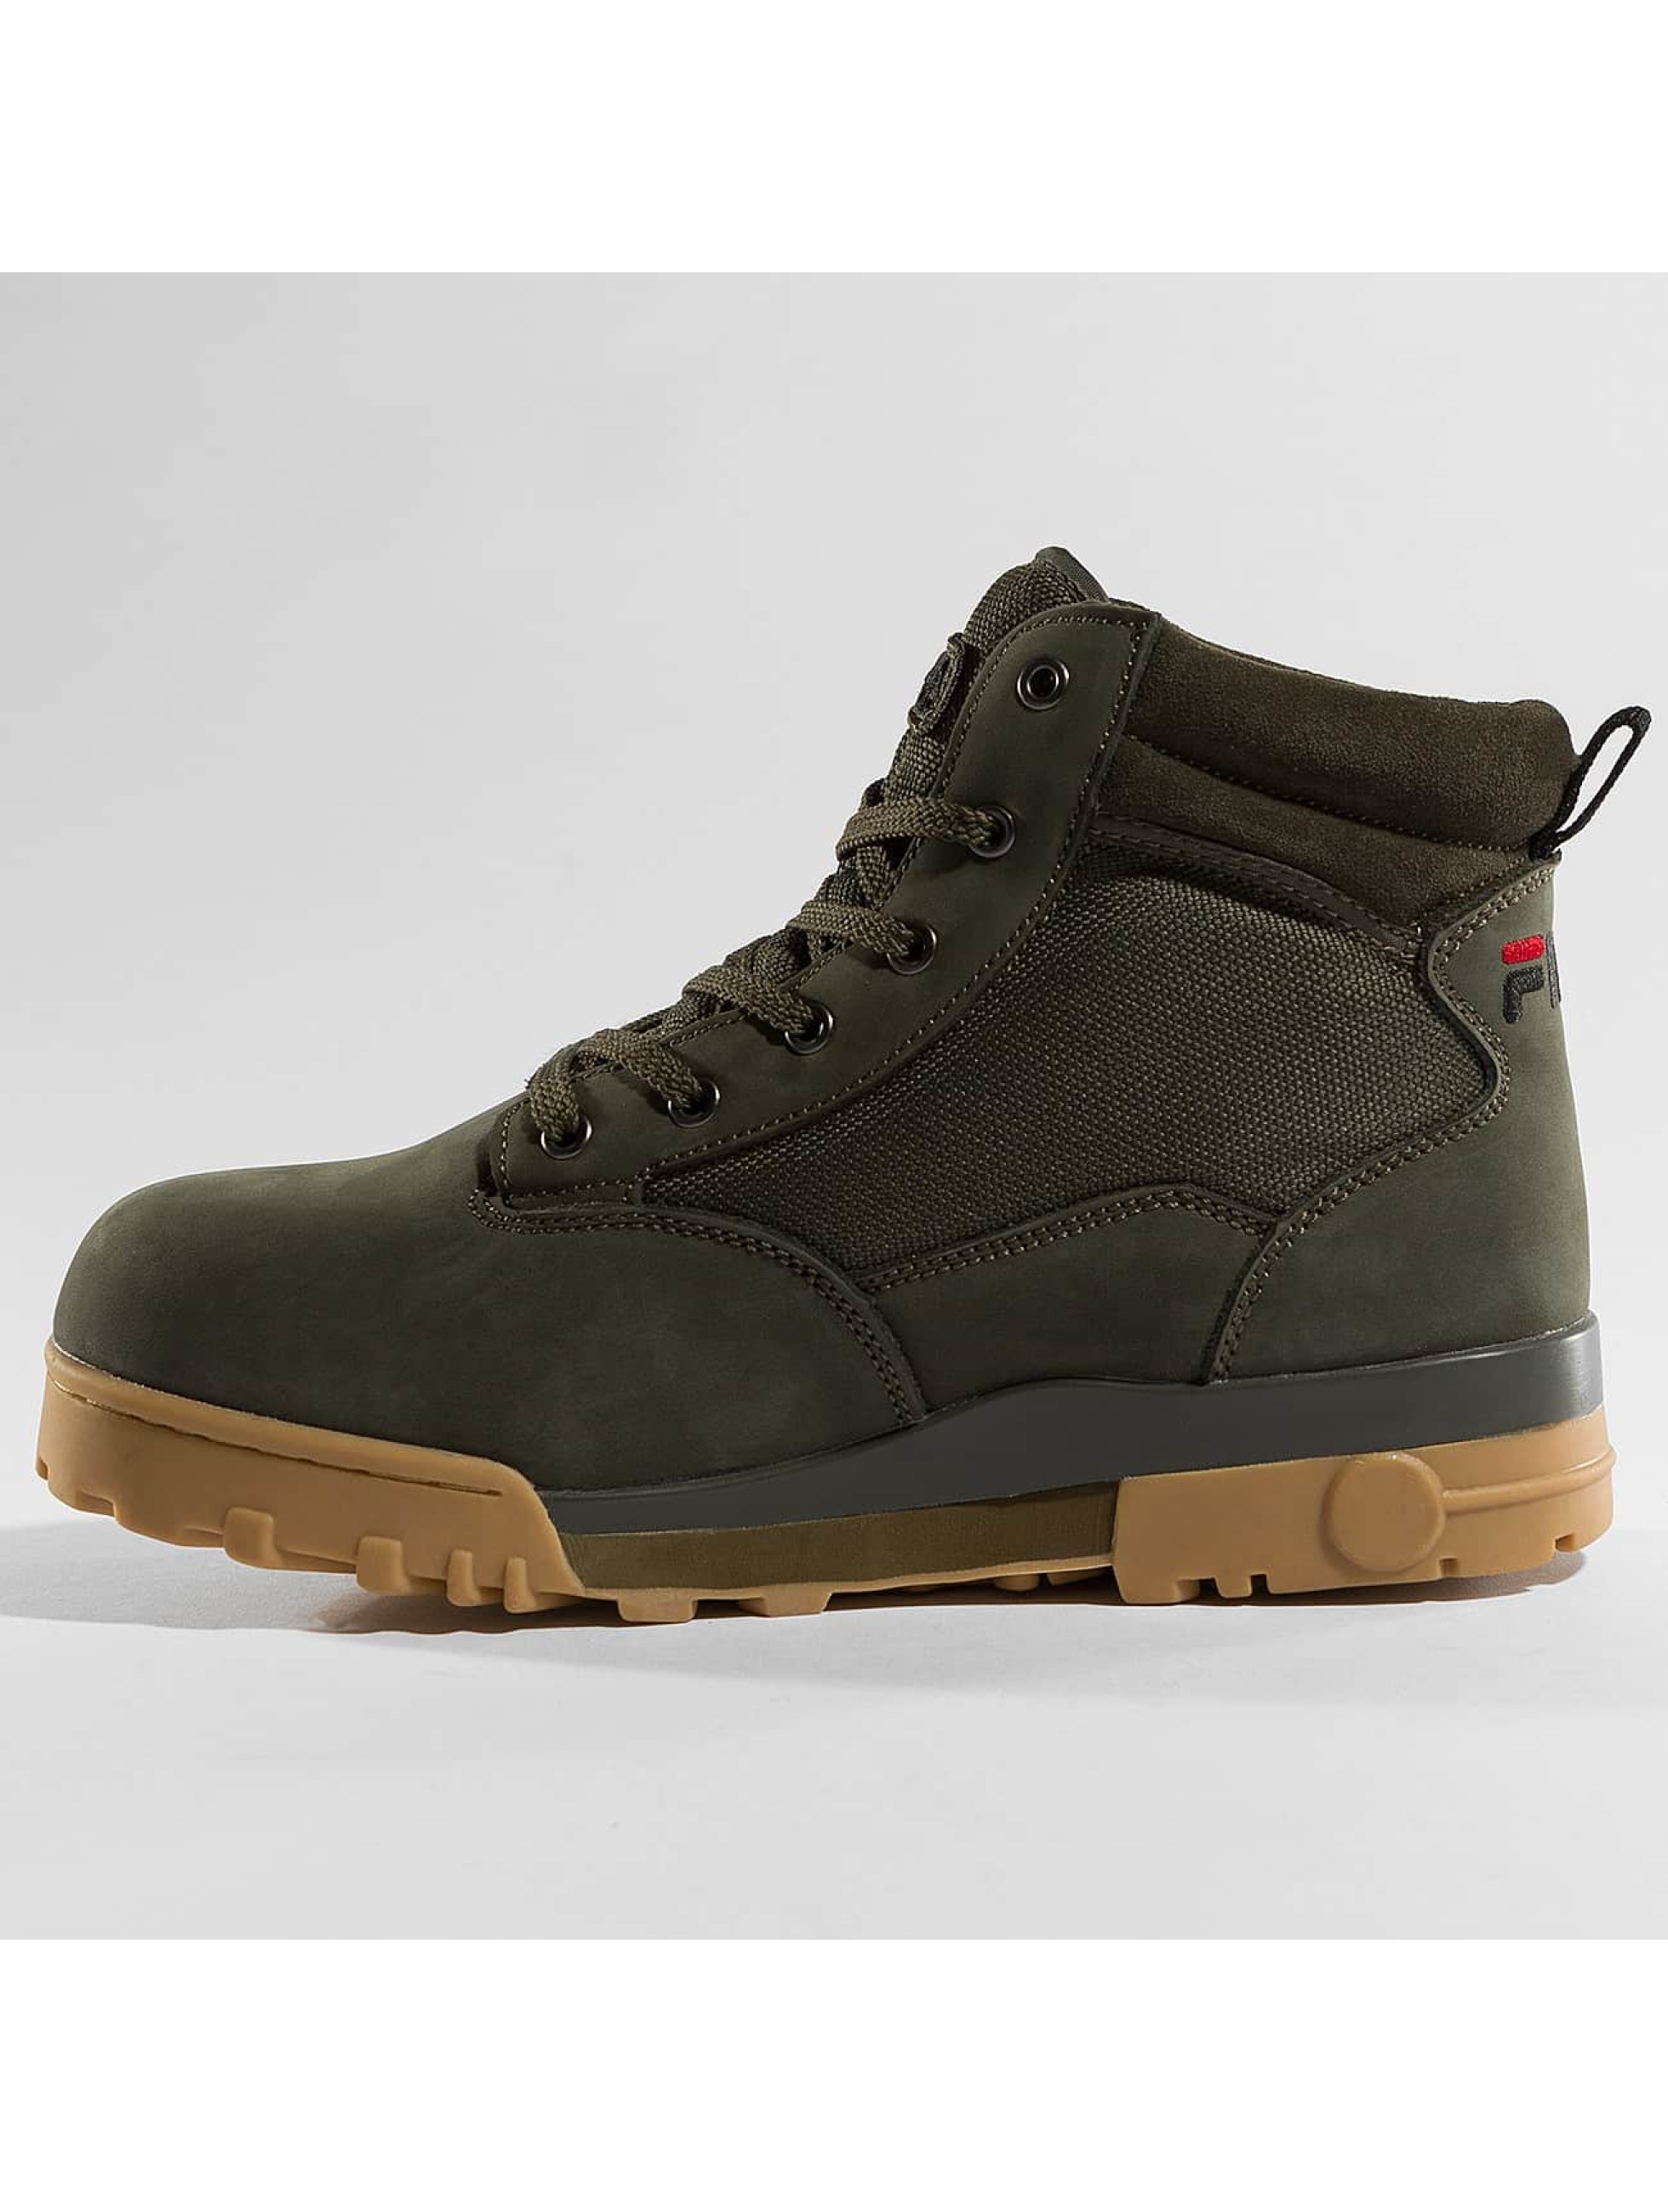 fila herren boots heritage grunge mid in olive 392131. Black Bedroom Furniture Sets. Home Design Ideas